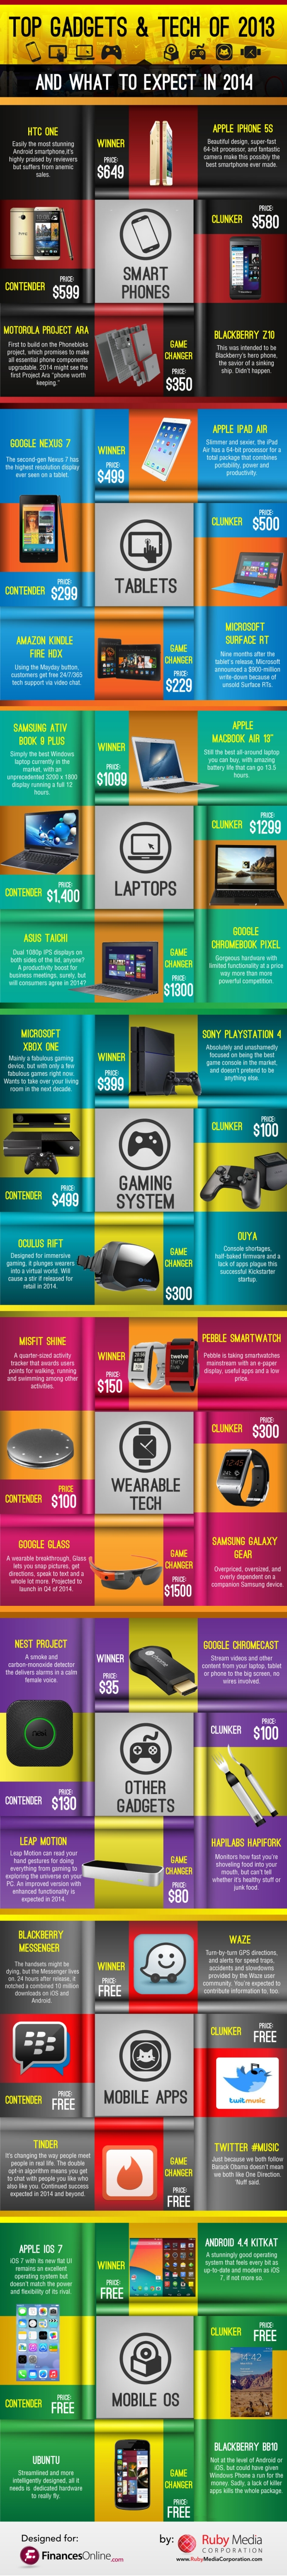 top gadgets 2013 infographic Top Gadgets and Tech of 2013